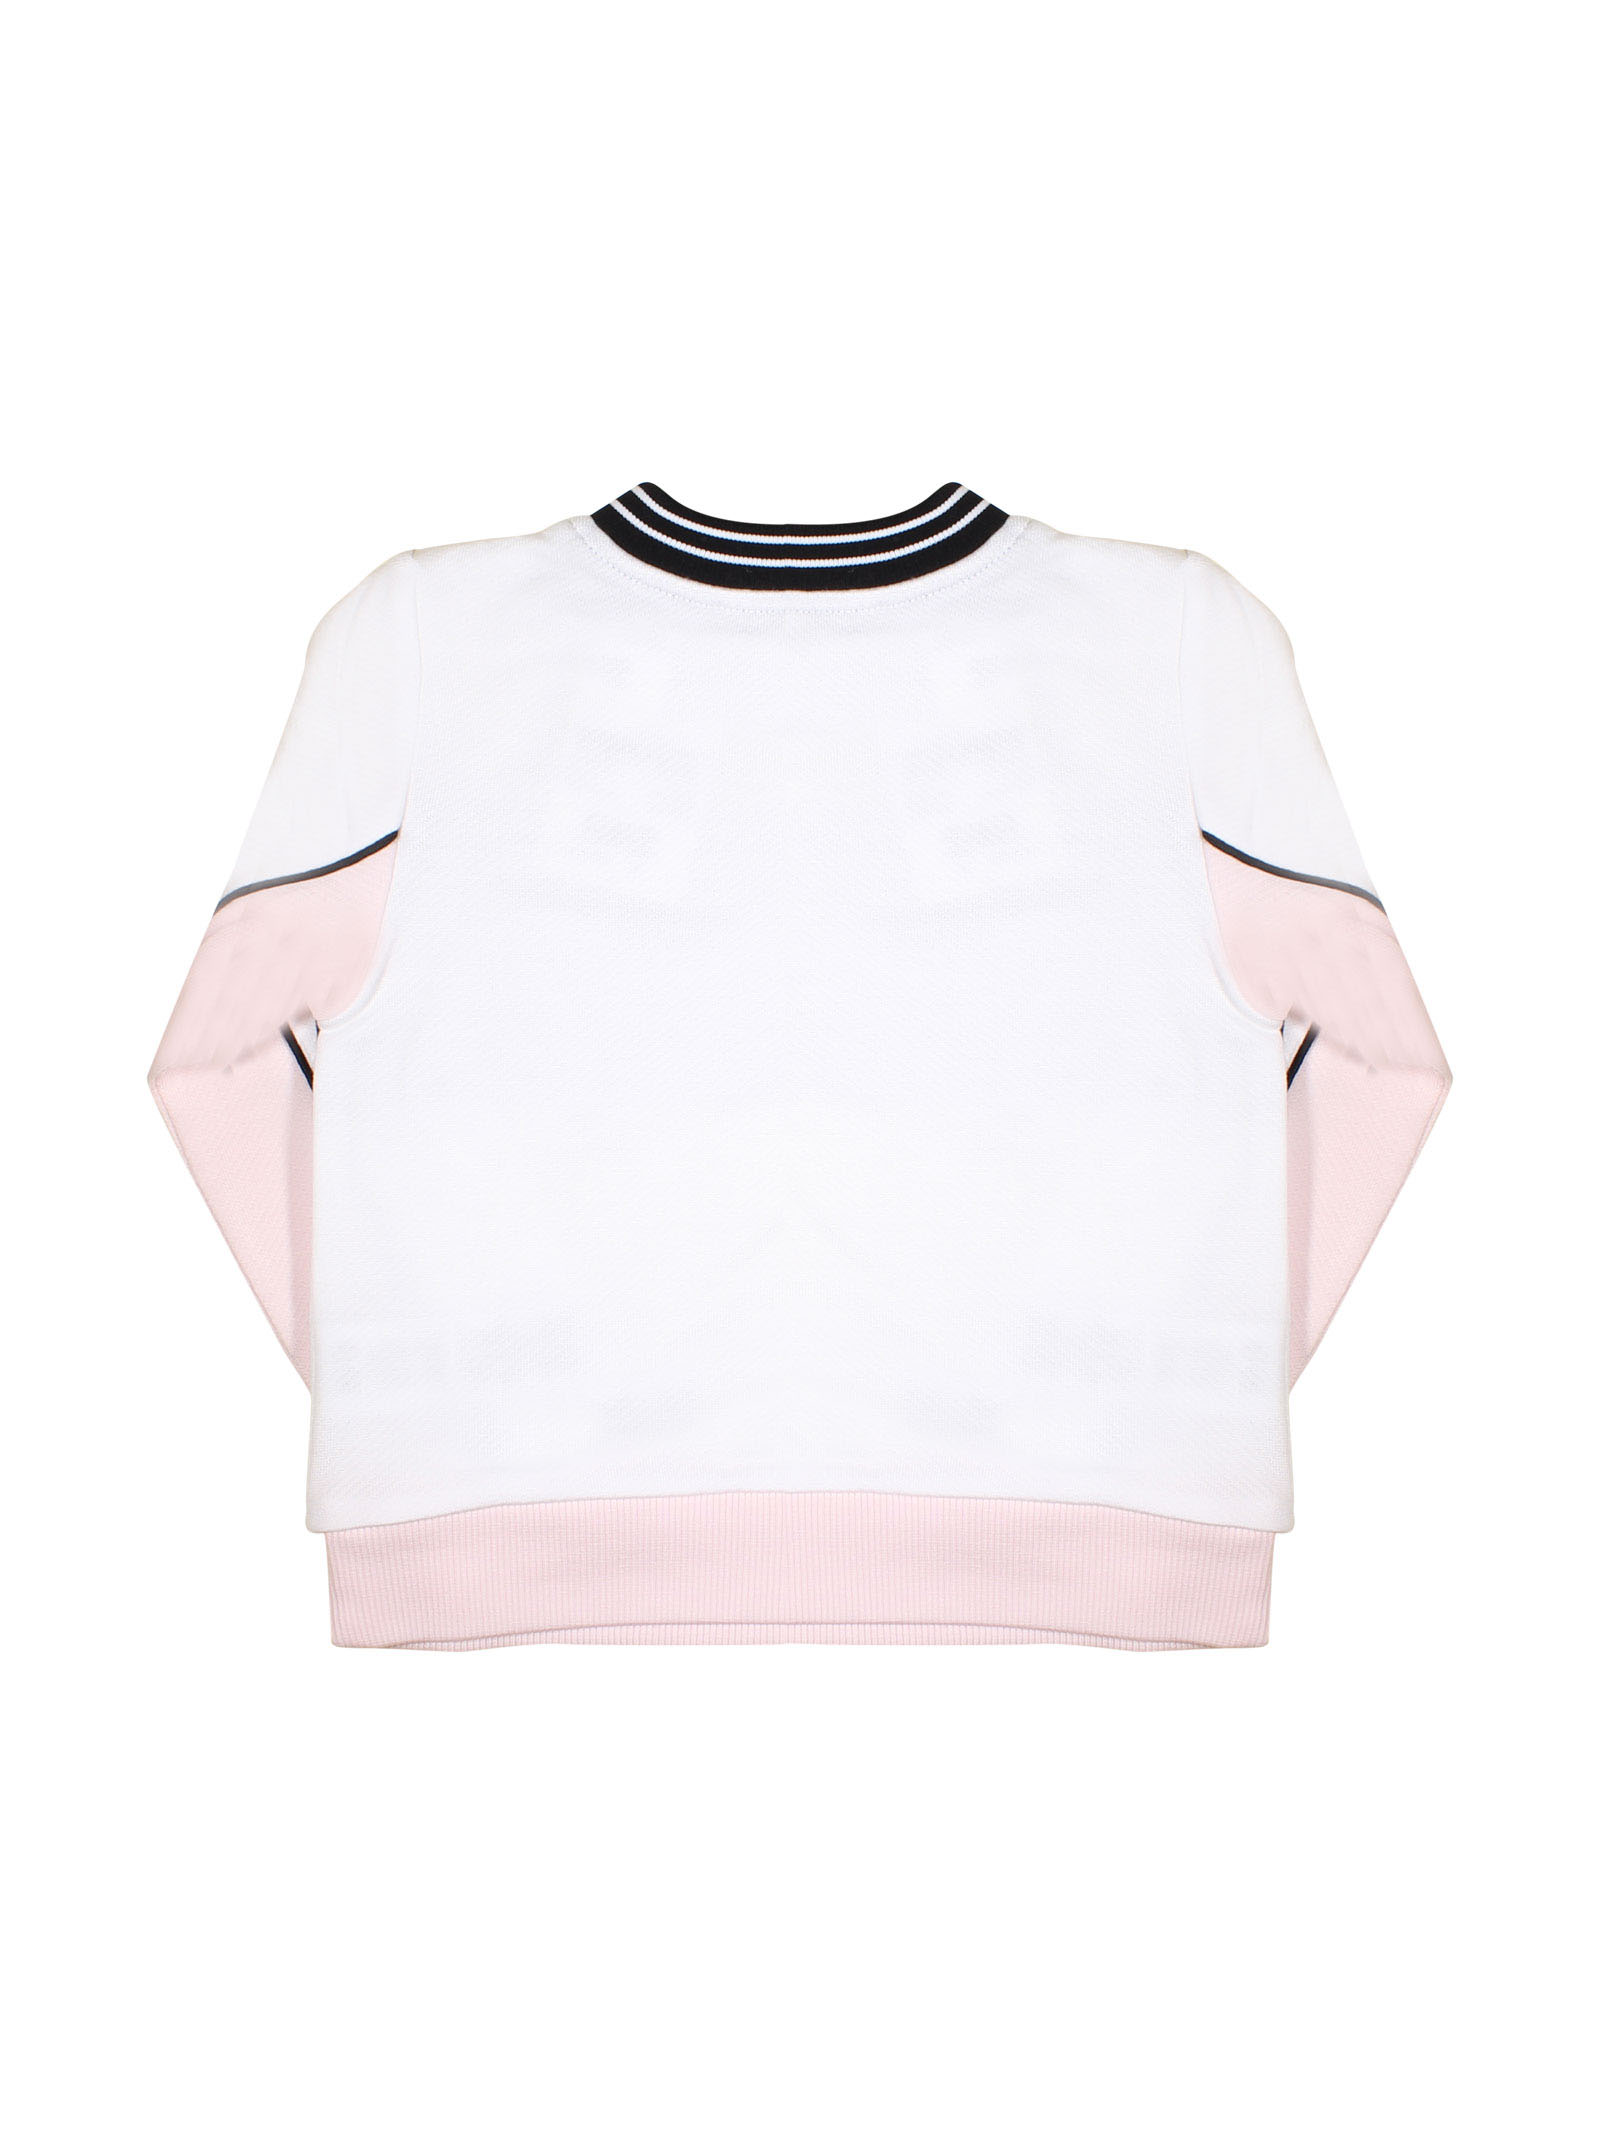 7adeeaa74c WHITE AND ROSE SWEATSHIRT WITH BLACK DETAILS GIVENCHY KIDS GIRL Givenchy  Kids | -108764232 ...